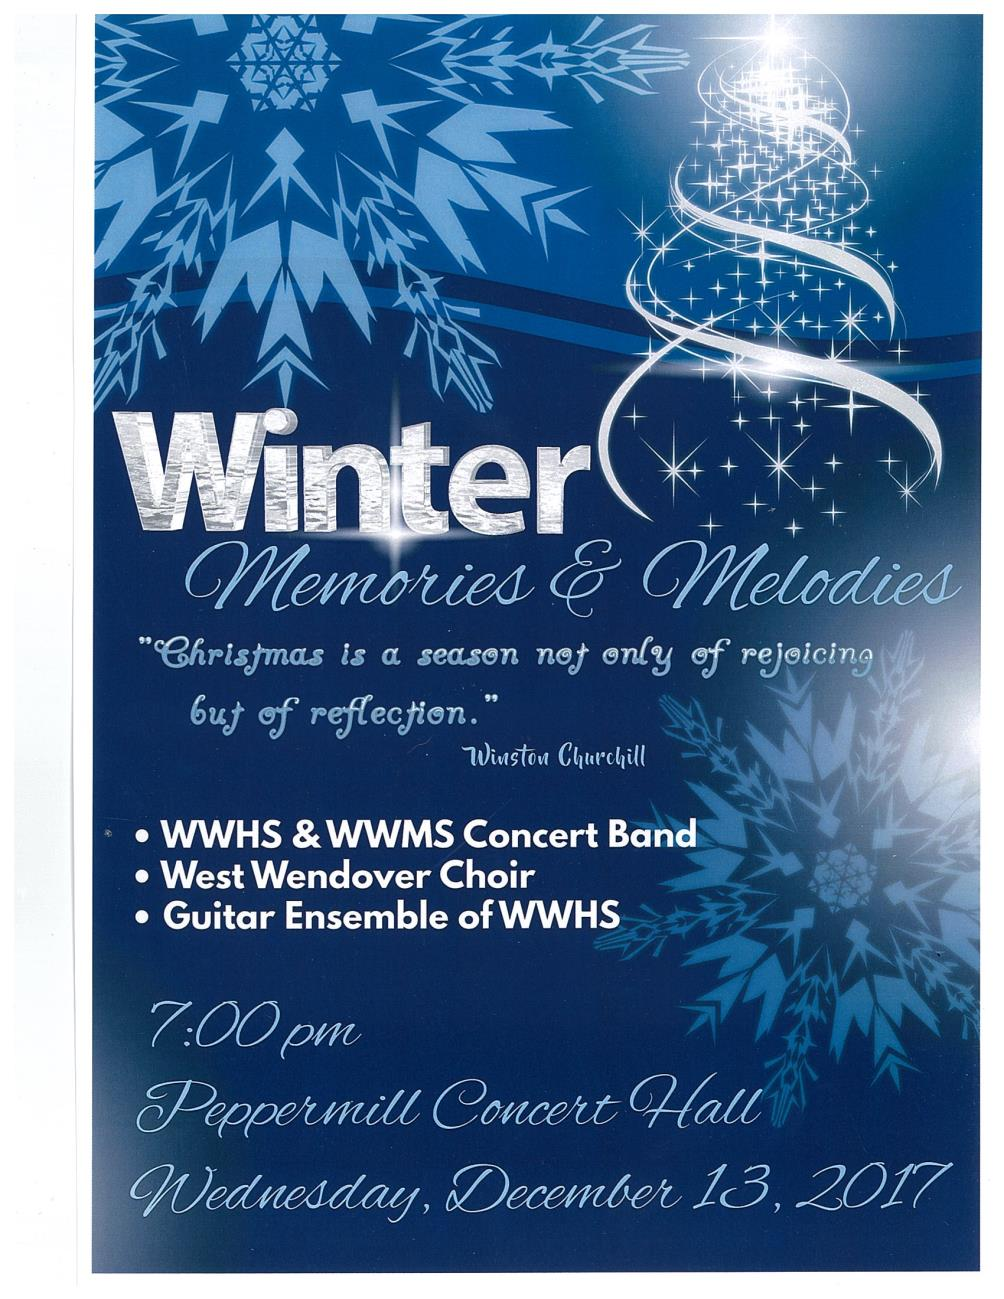 WWHS & WWMS Winter Concert Flyer Image